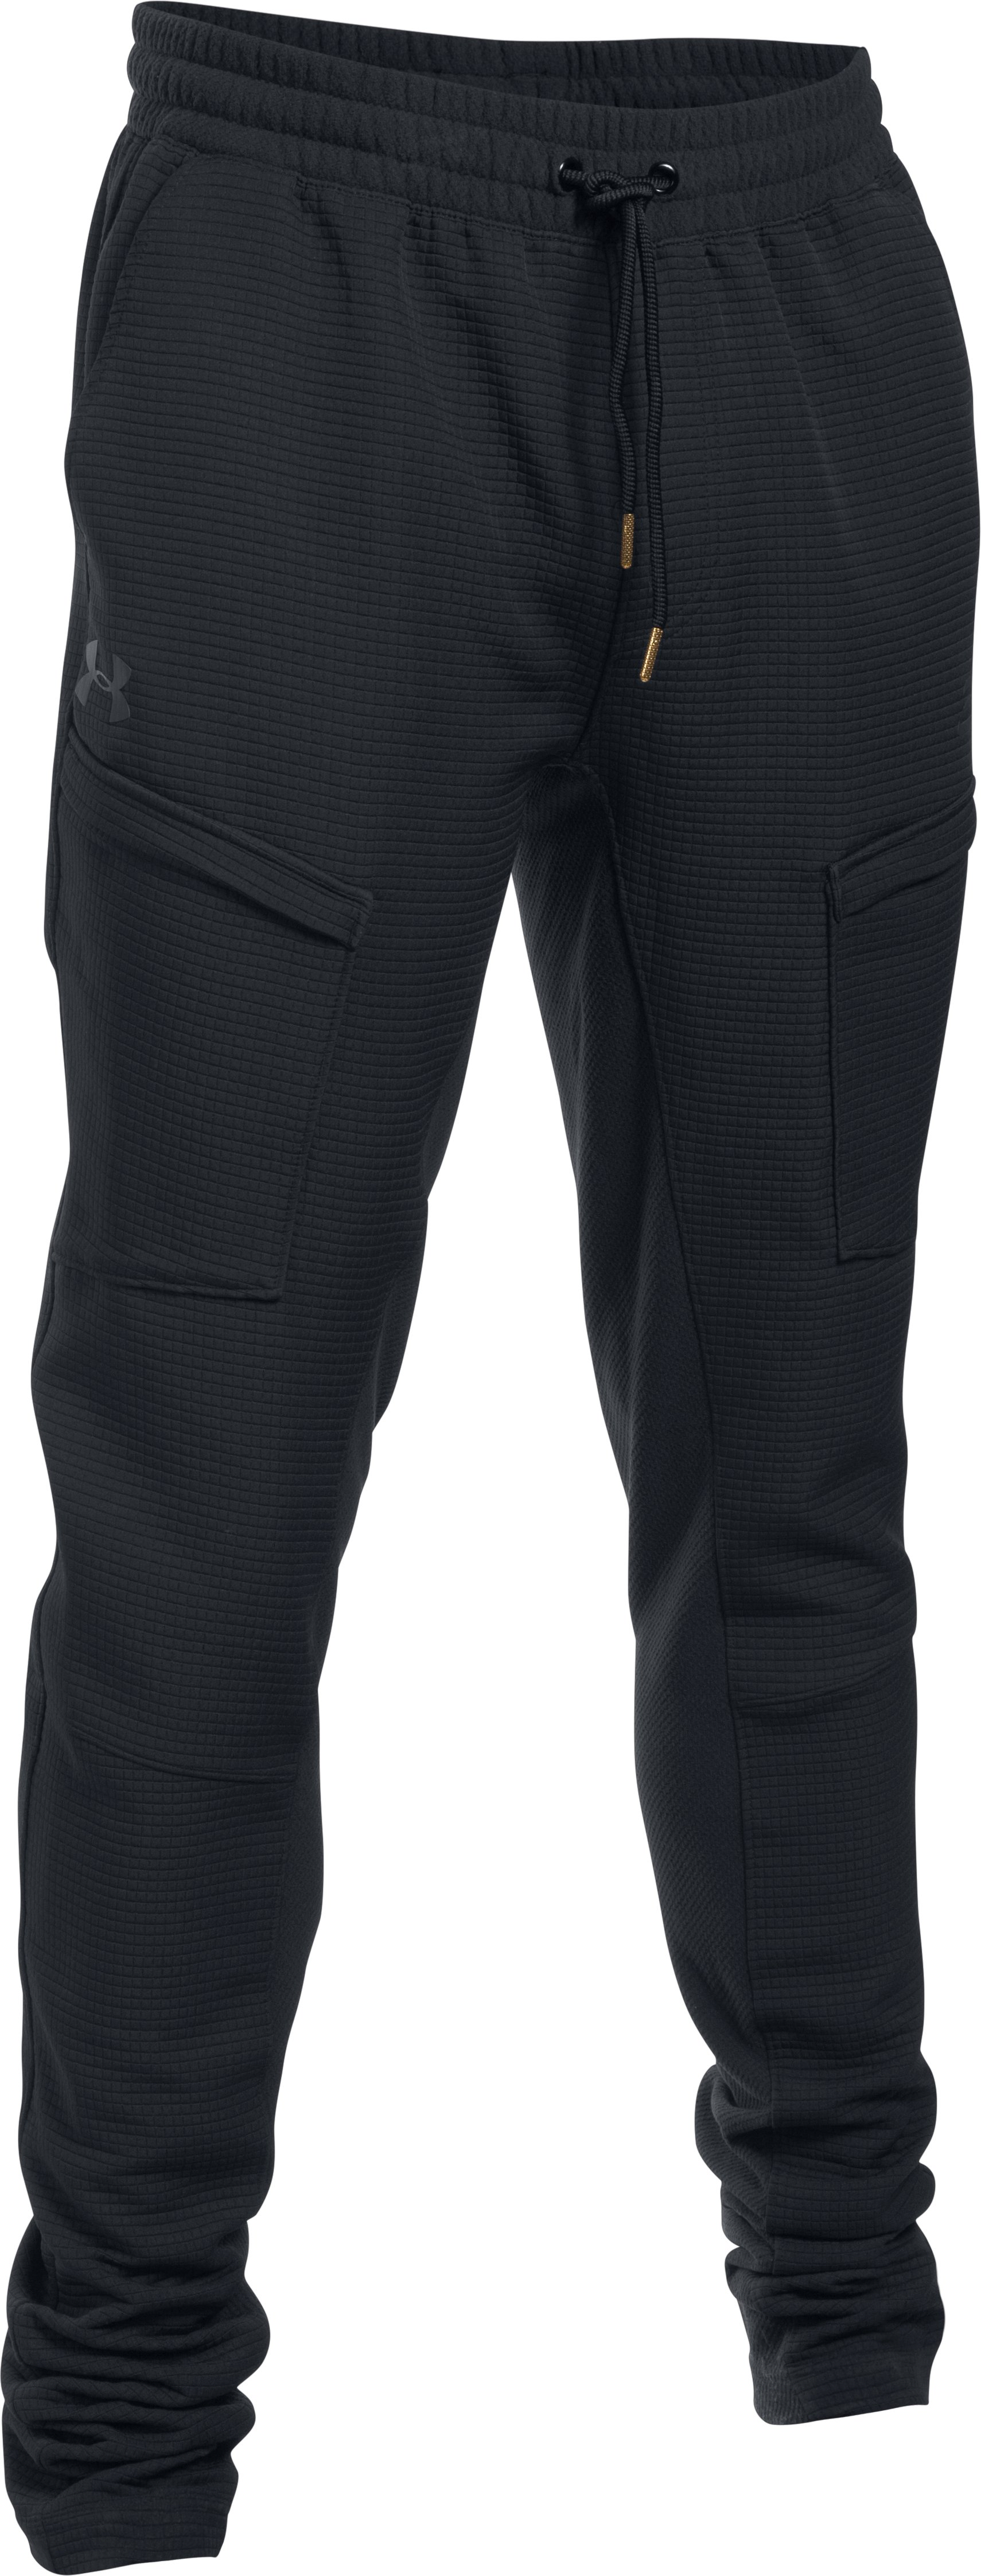 Men's SC30 Stacked Pants, Black